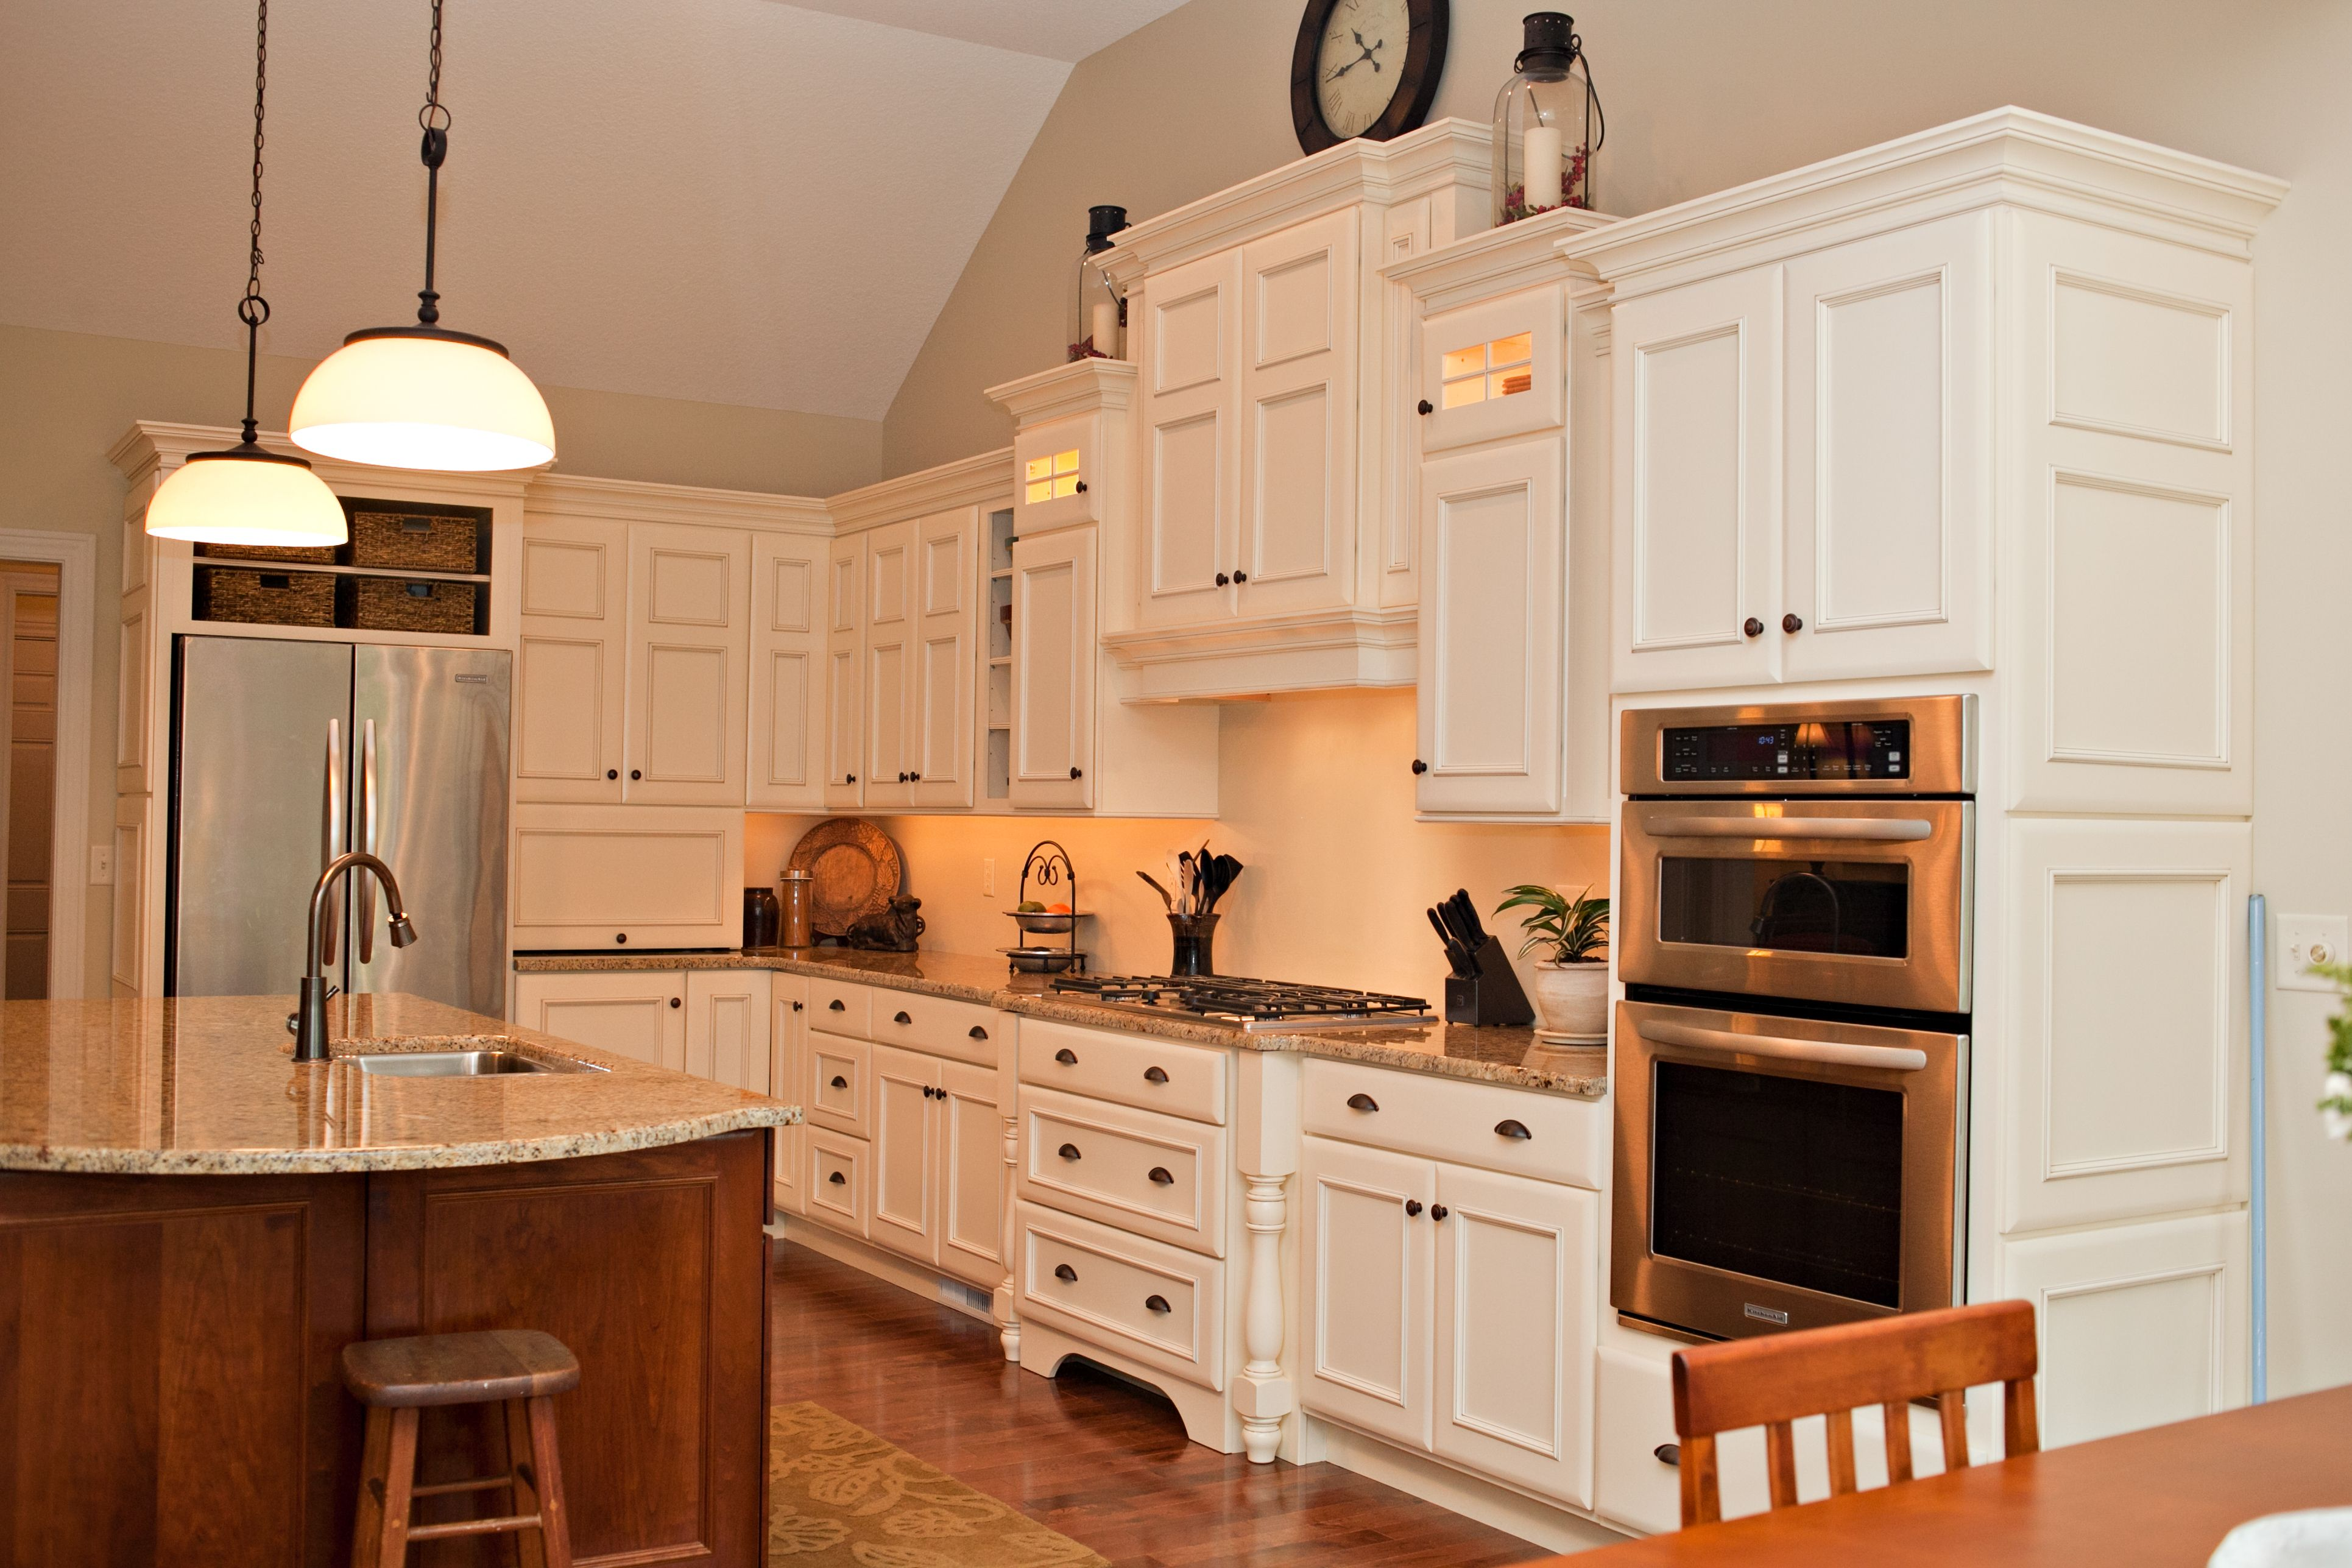 Staggered Heights And Depths On This Range Hood Cabinet